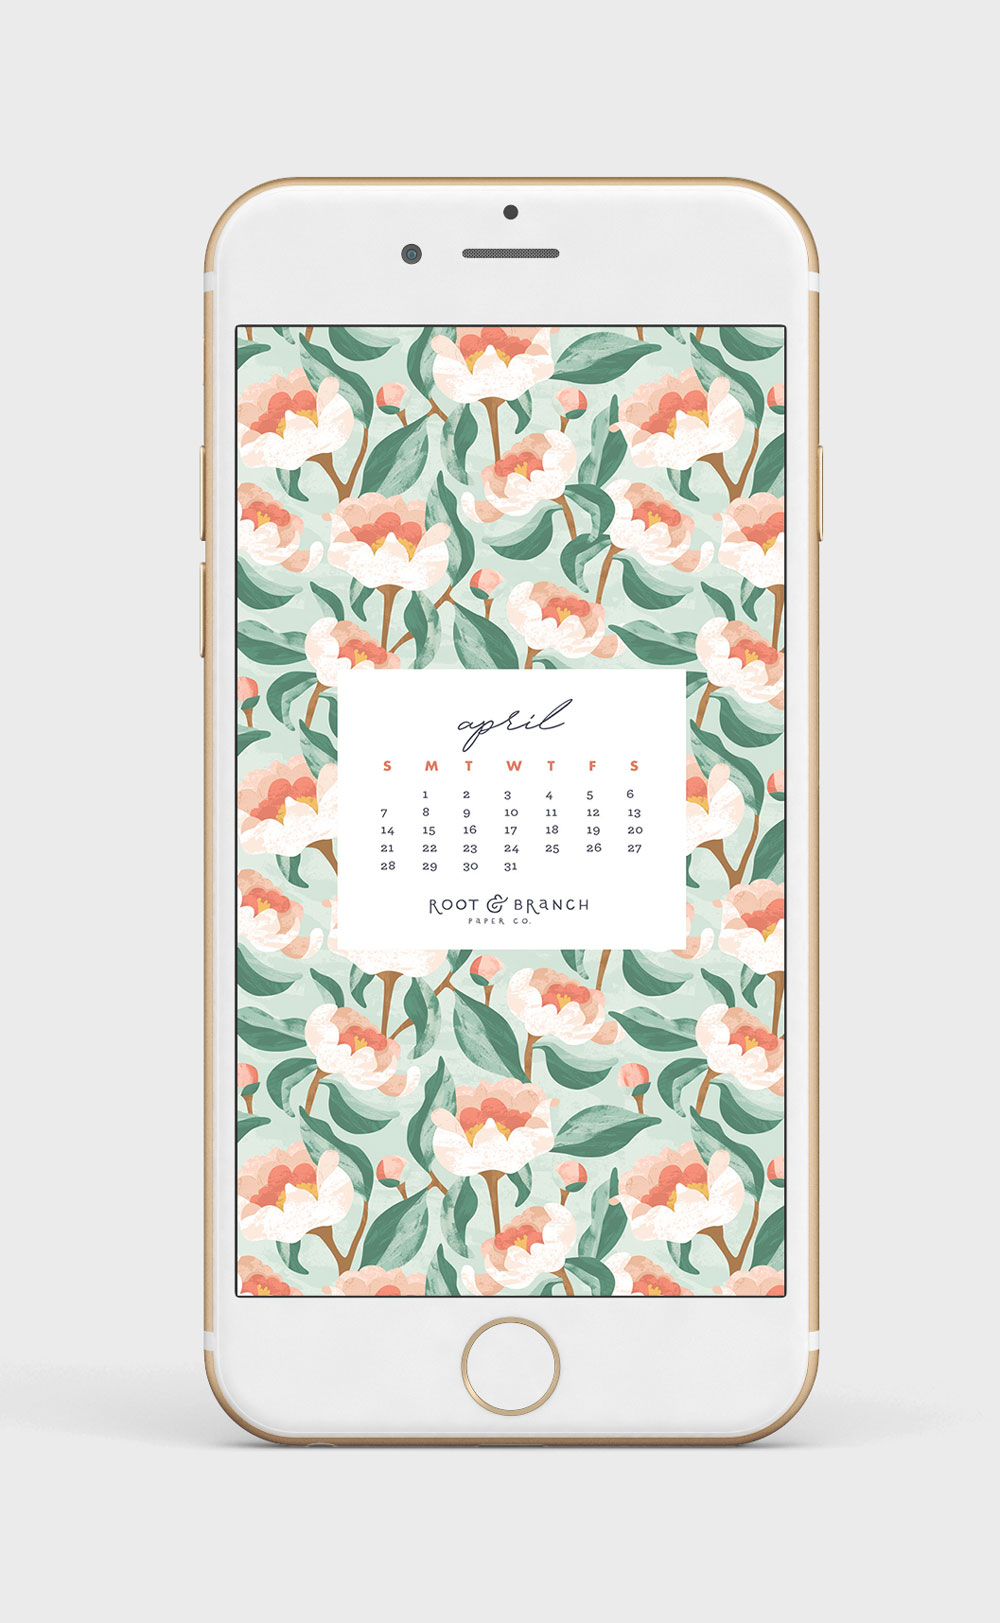 April 2019 Calendar Free Phone Backgrounds And Desktop Wallpapers